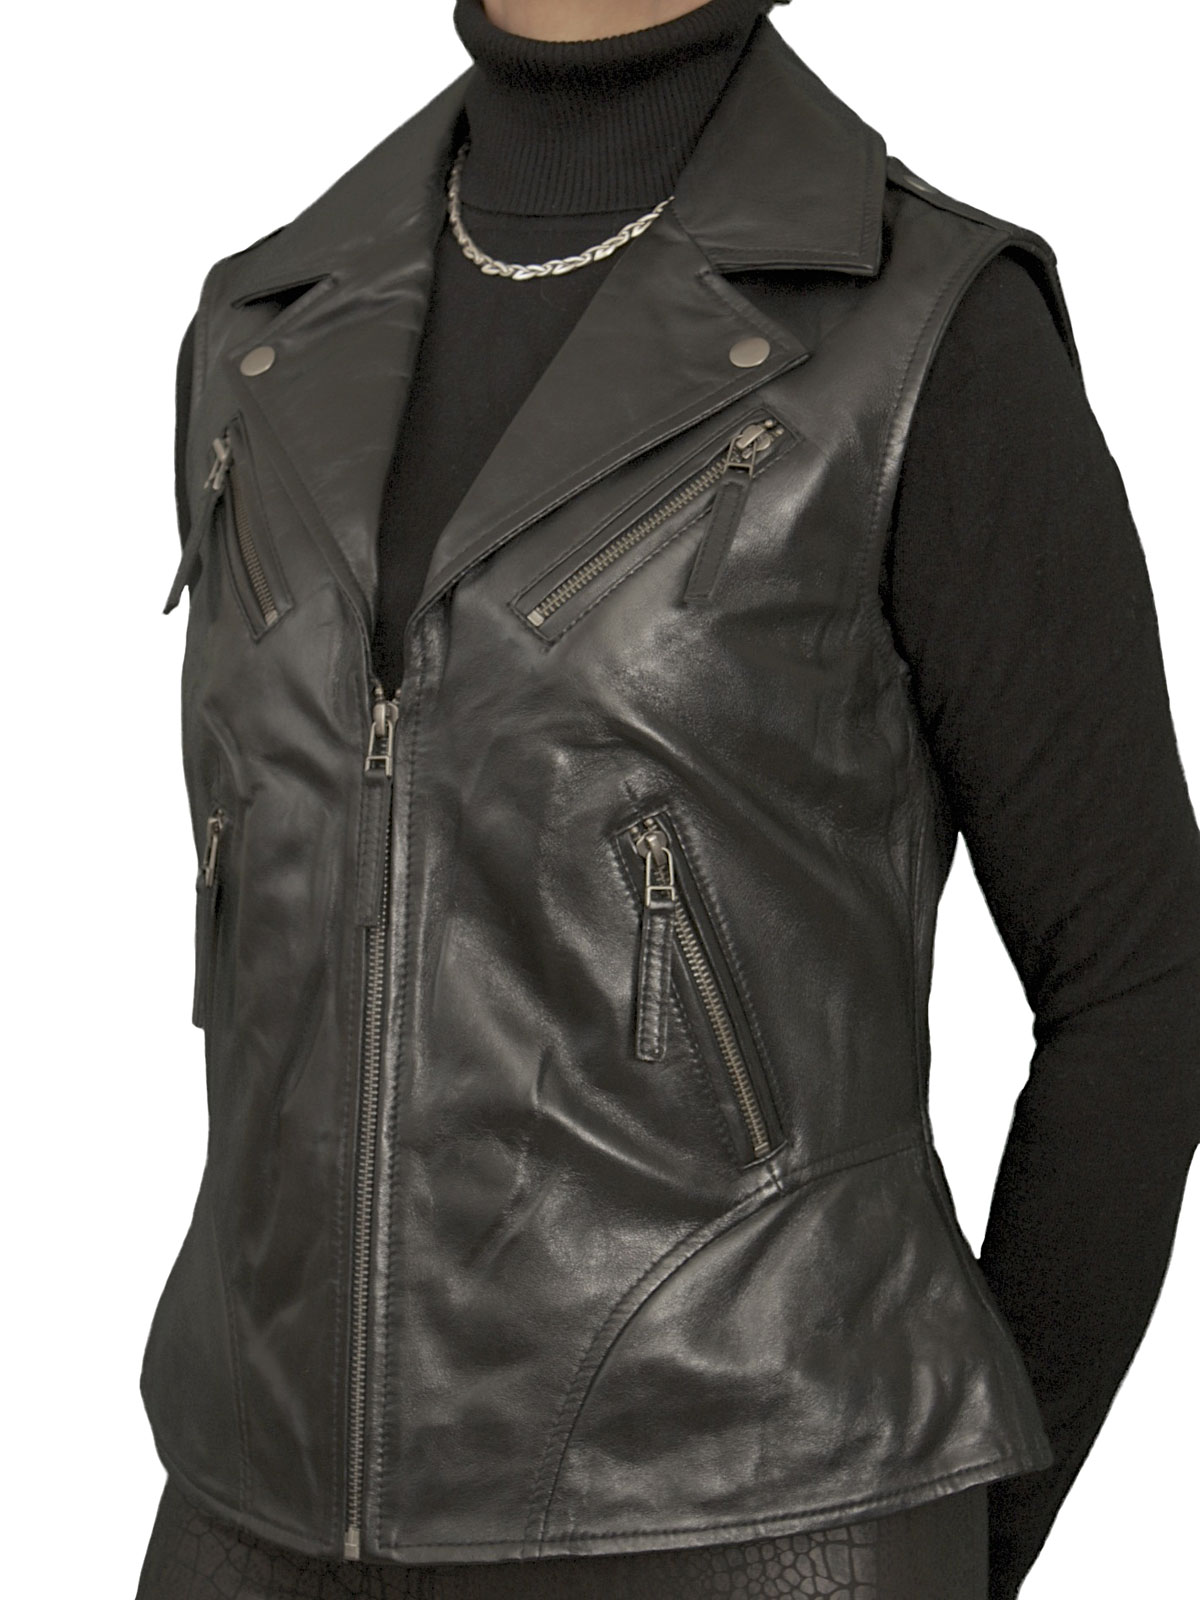 You can browse our collection of women's leather jackets which varies from the classic biker style leather jacket to the smart traditional ladies leather blazer which is perfect for all occasions. We stock a fantastic range of of Gilets and shooting vests that are perfect for many different activities.